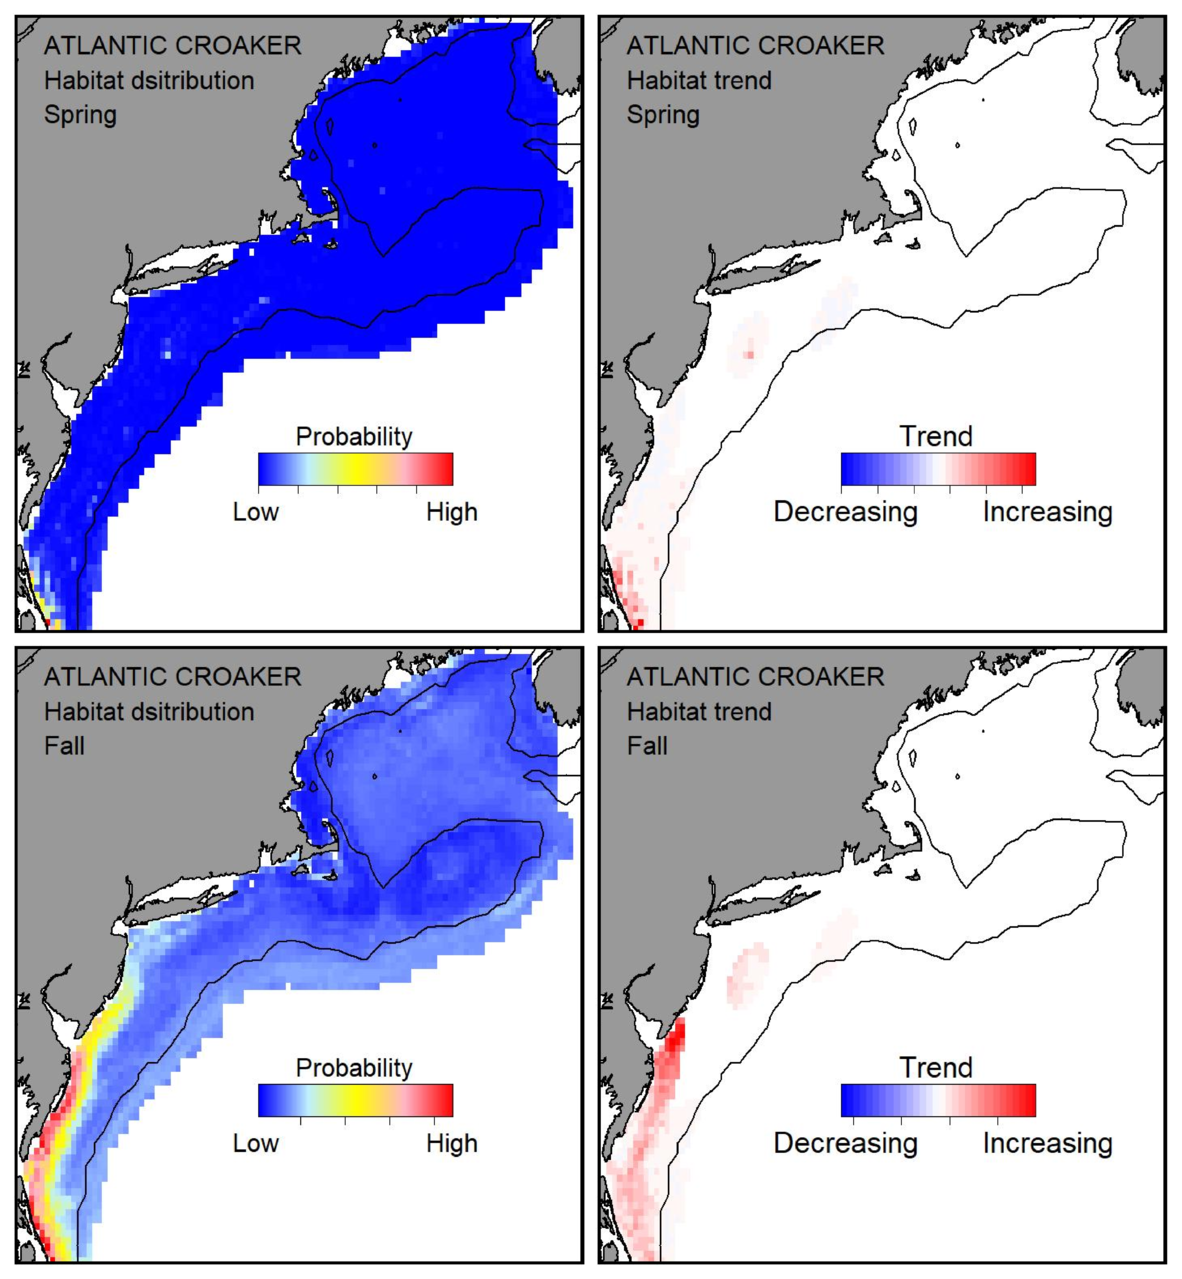 Probable habitat distribution for Atlantic croaker showing the highest concentration and increasing trend in the Gulf of Maine during the spring. Bottom row: Probable habitat distribution for Atlantic croaker showing the highest concentration and increasing trend in the Gulf of Maine during the fall.